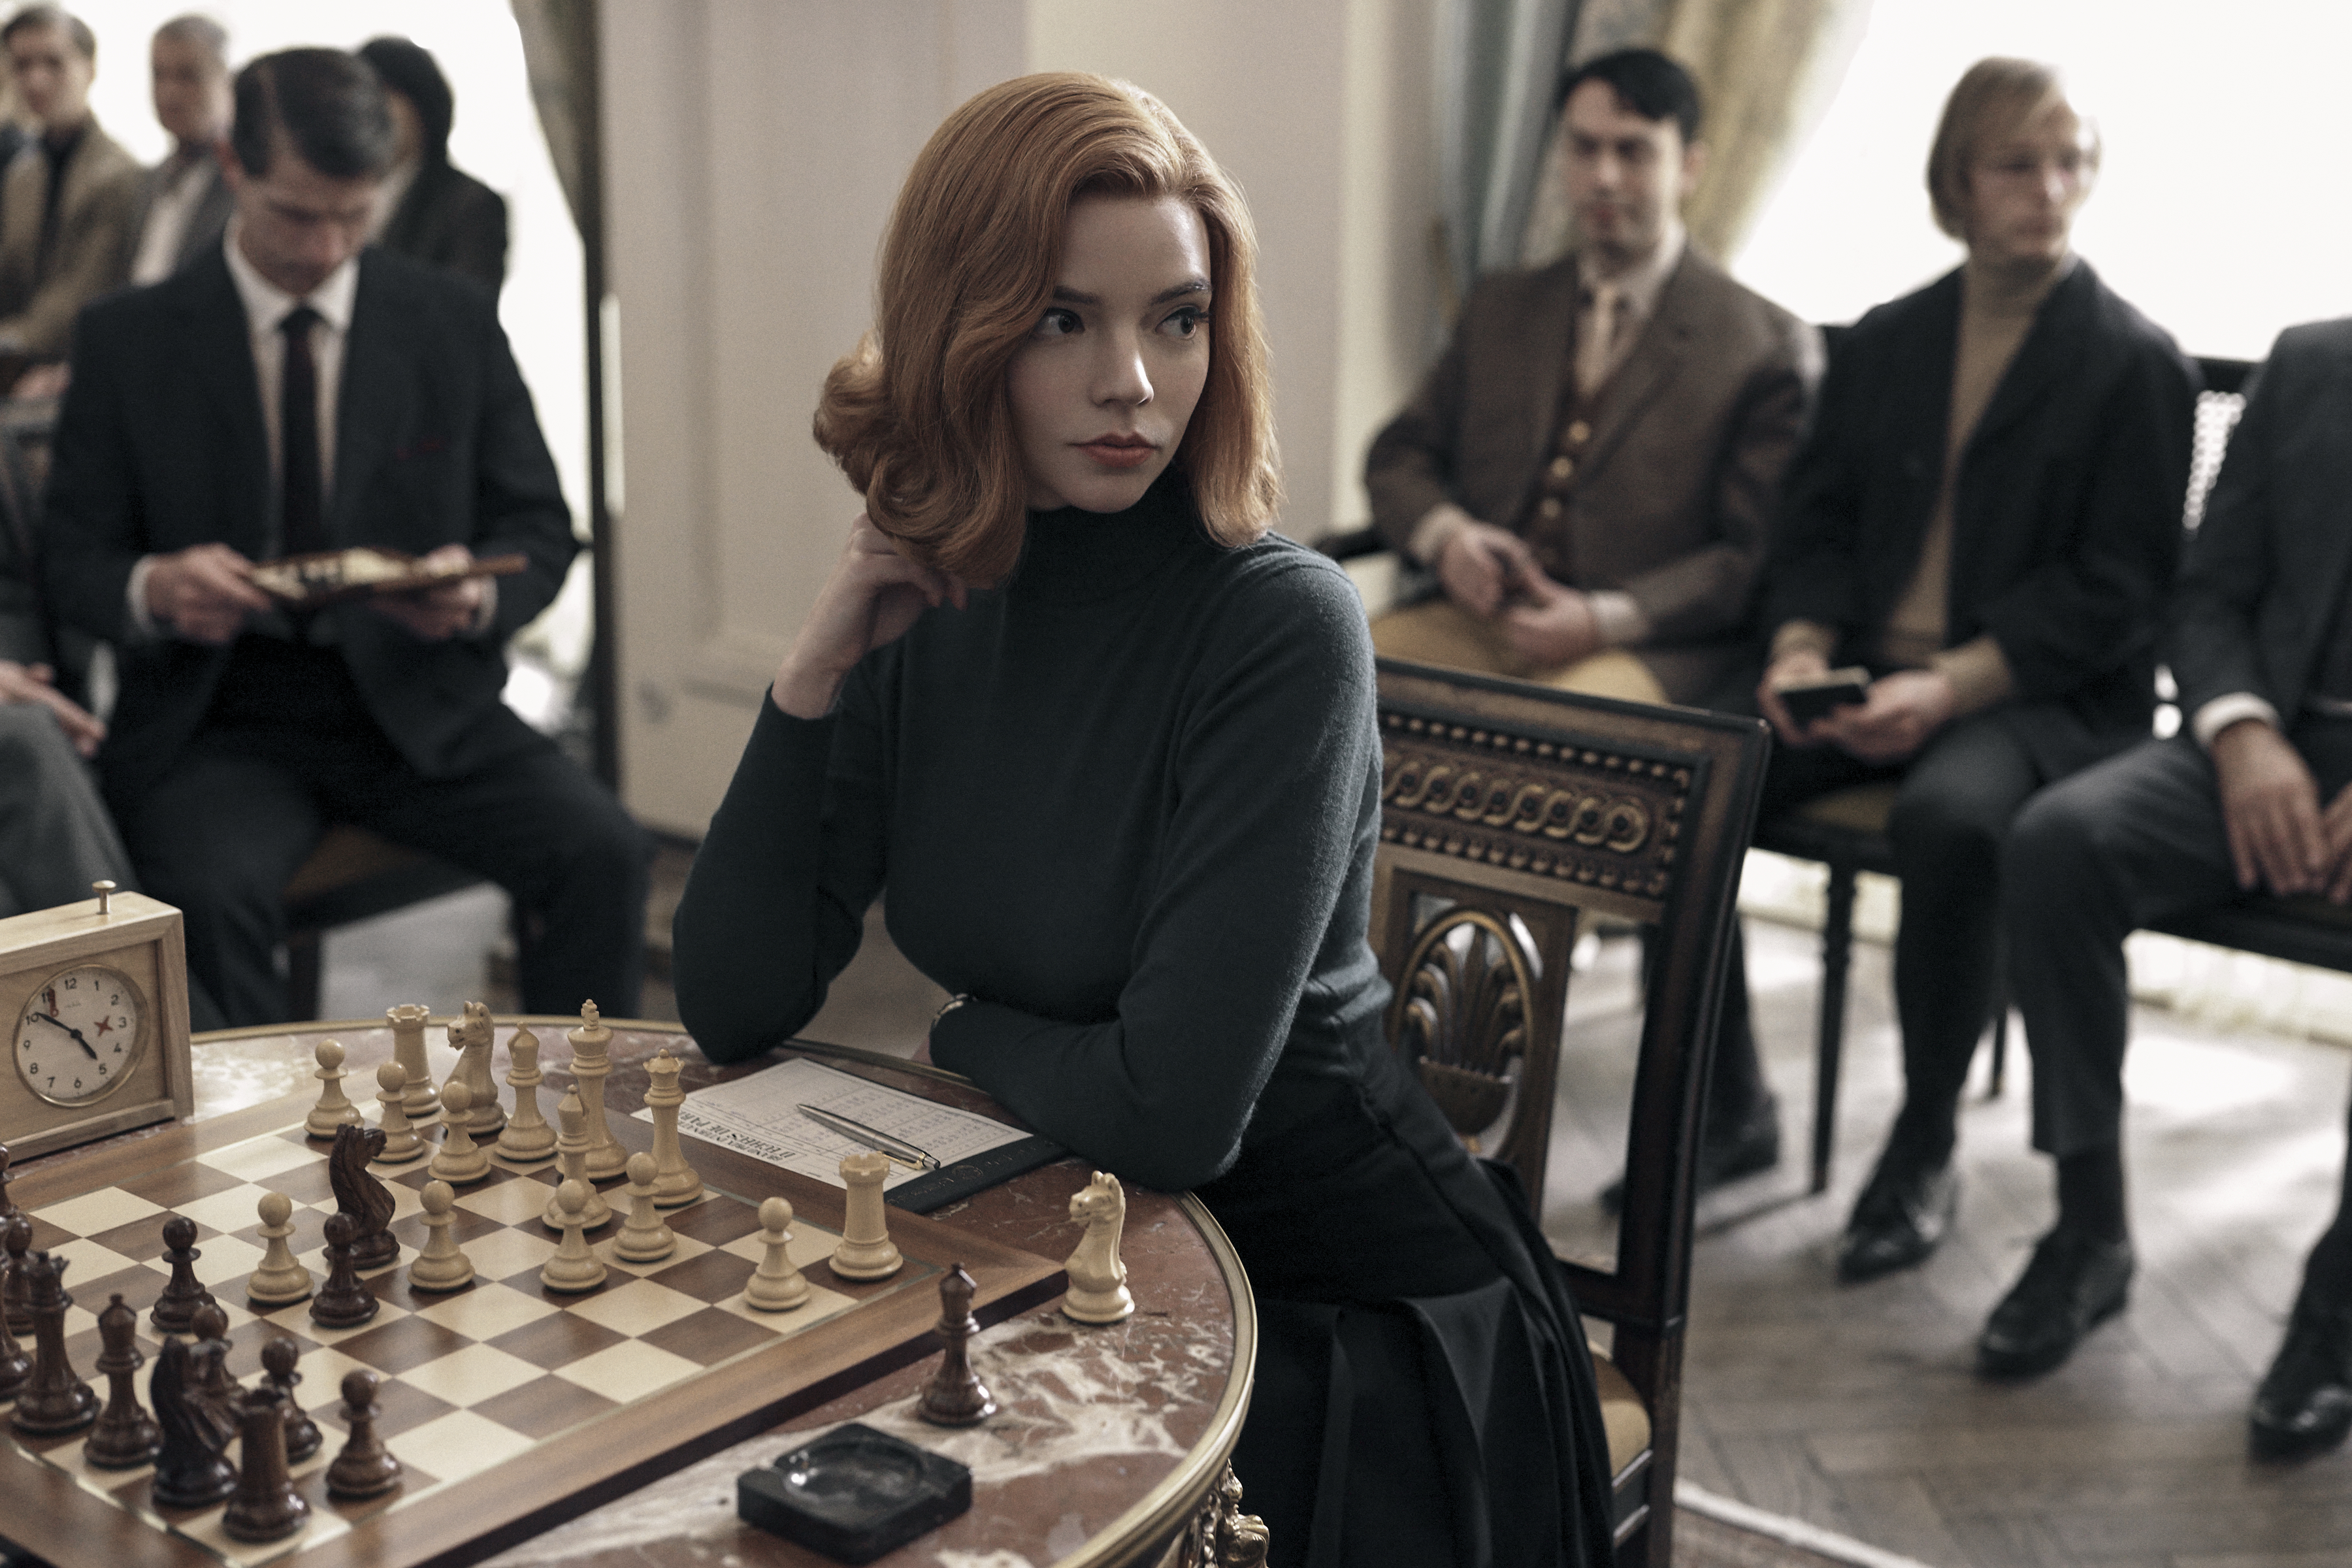 What the green pills in 'The Queen's Gambit' are